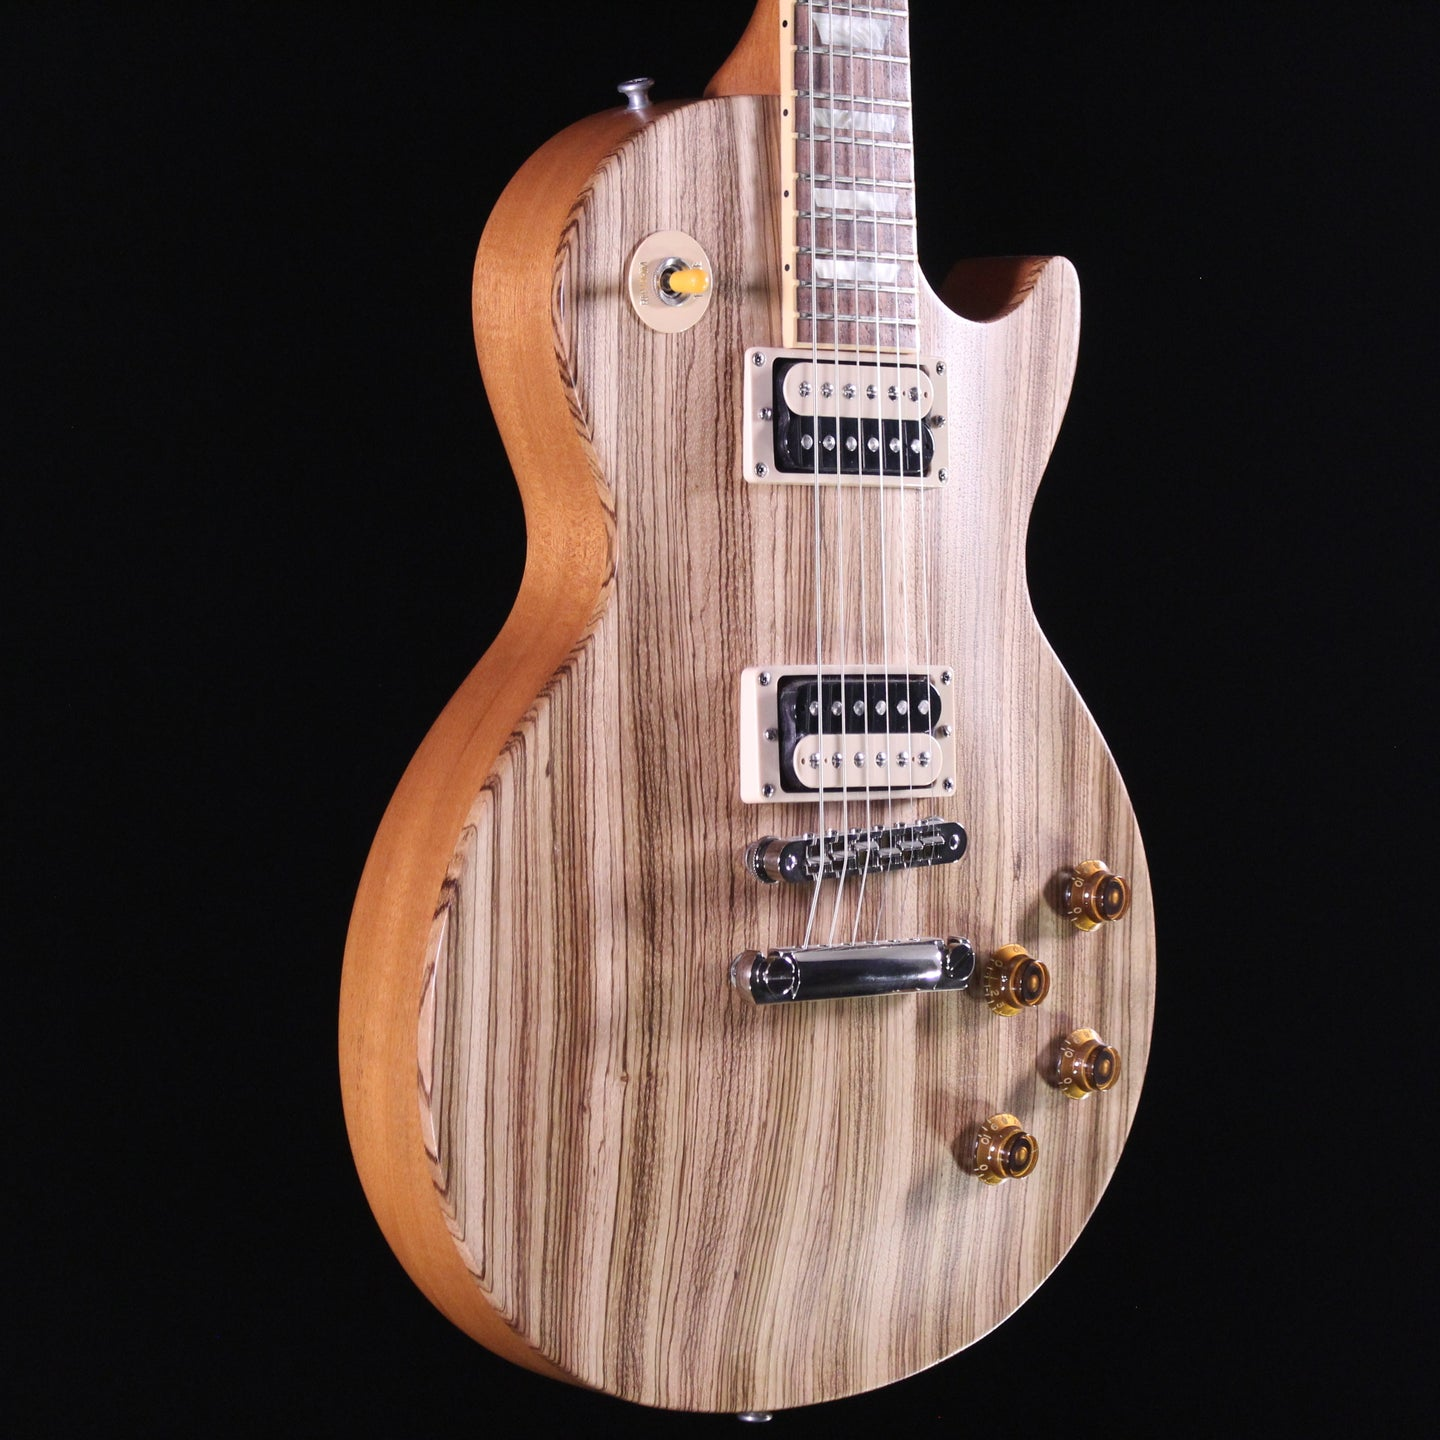 Gibson Les Paul Classic Zebrawood - Express Shipping - (G-039) Serial: 012770508 - PLEK'd